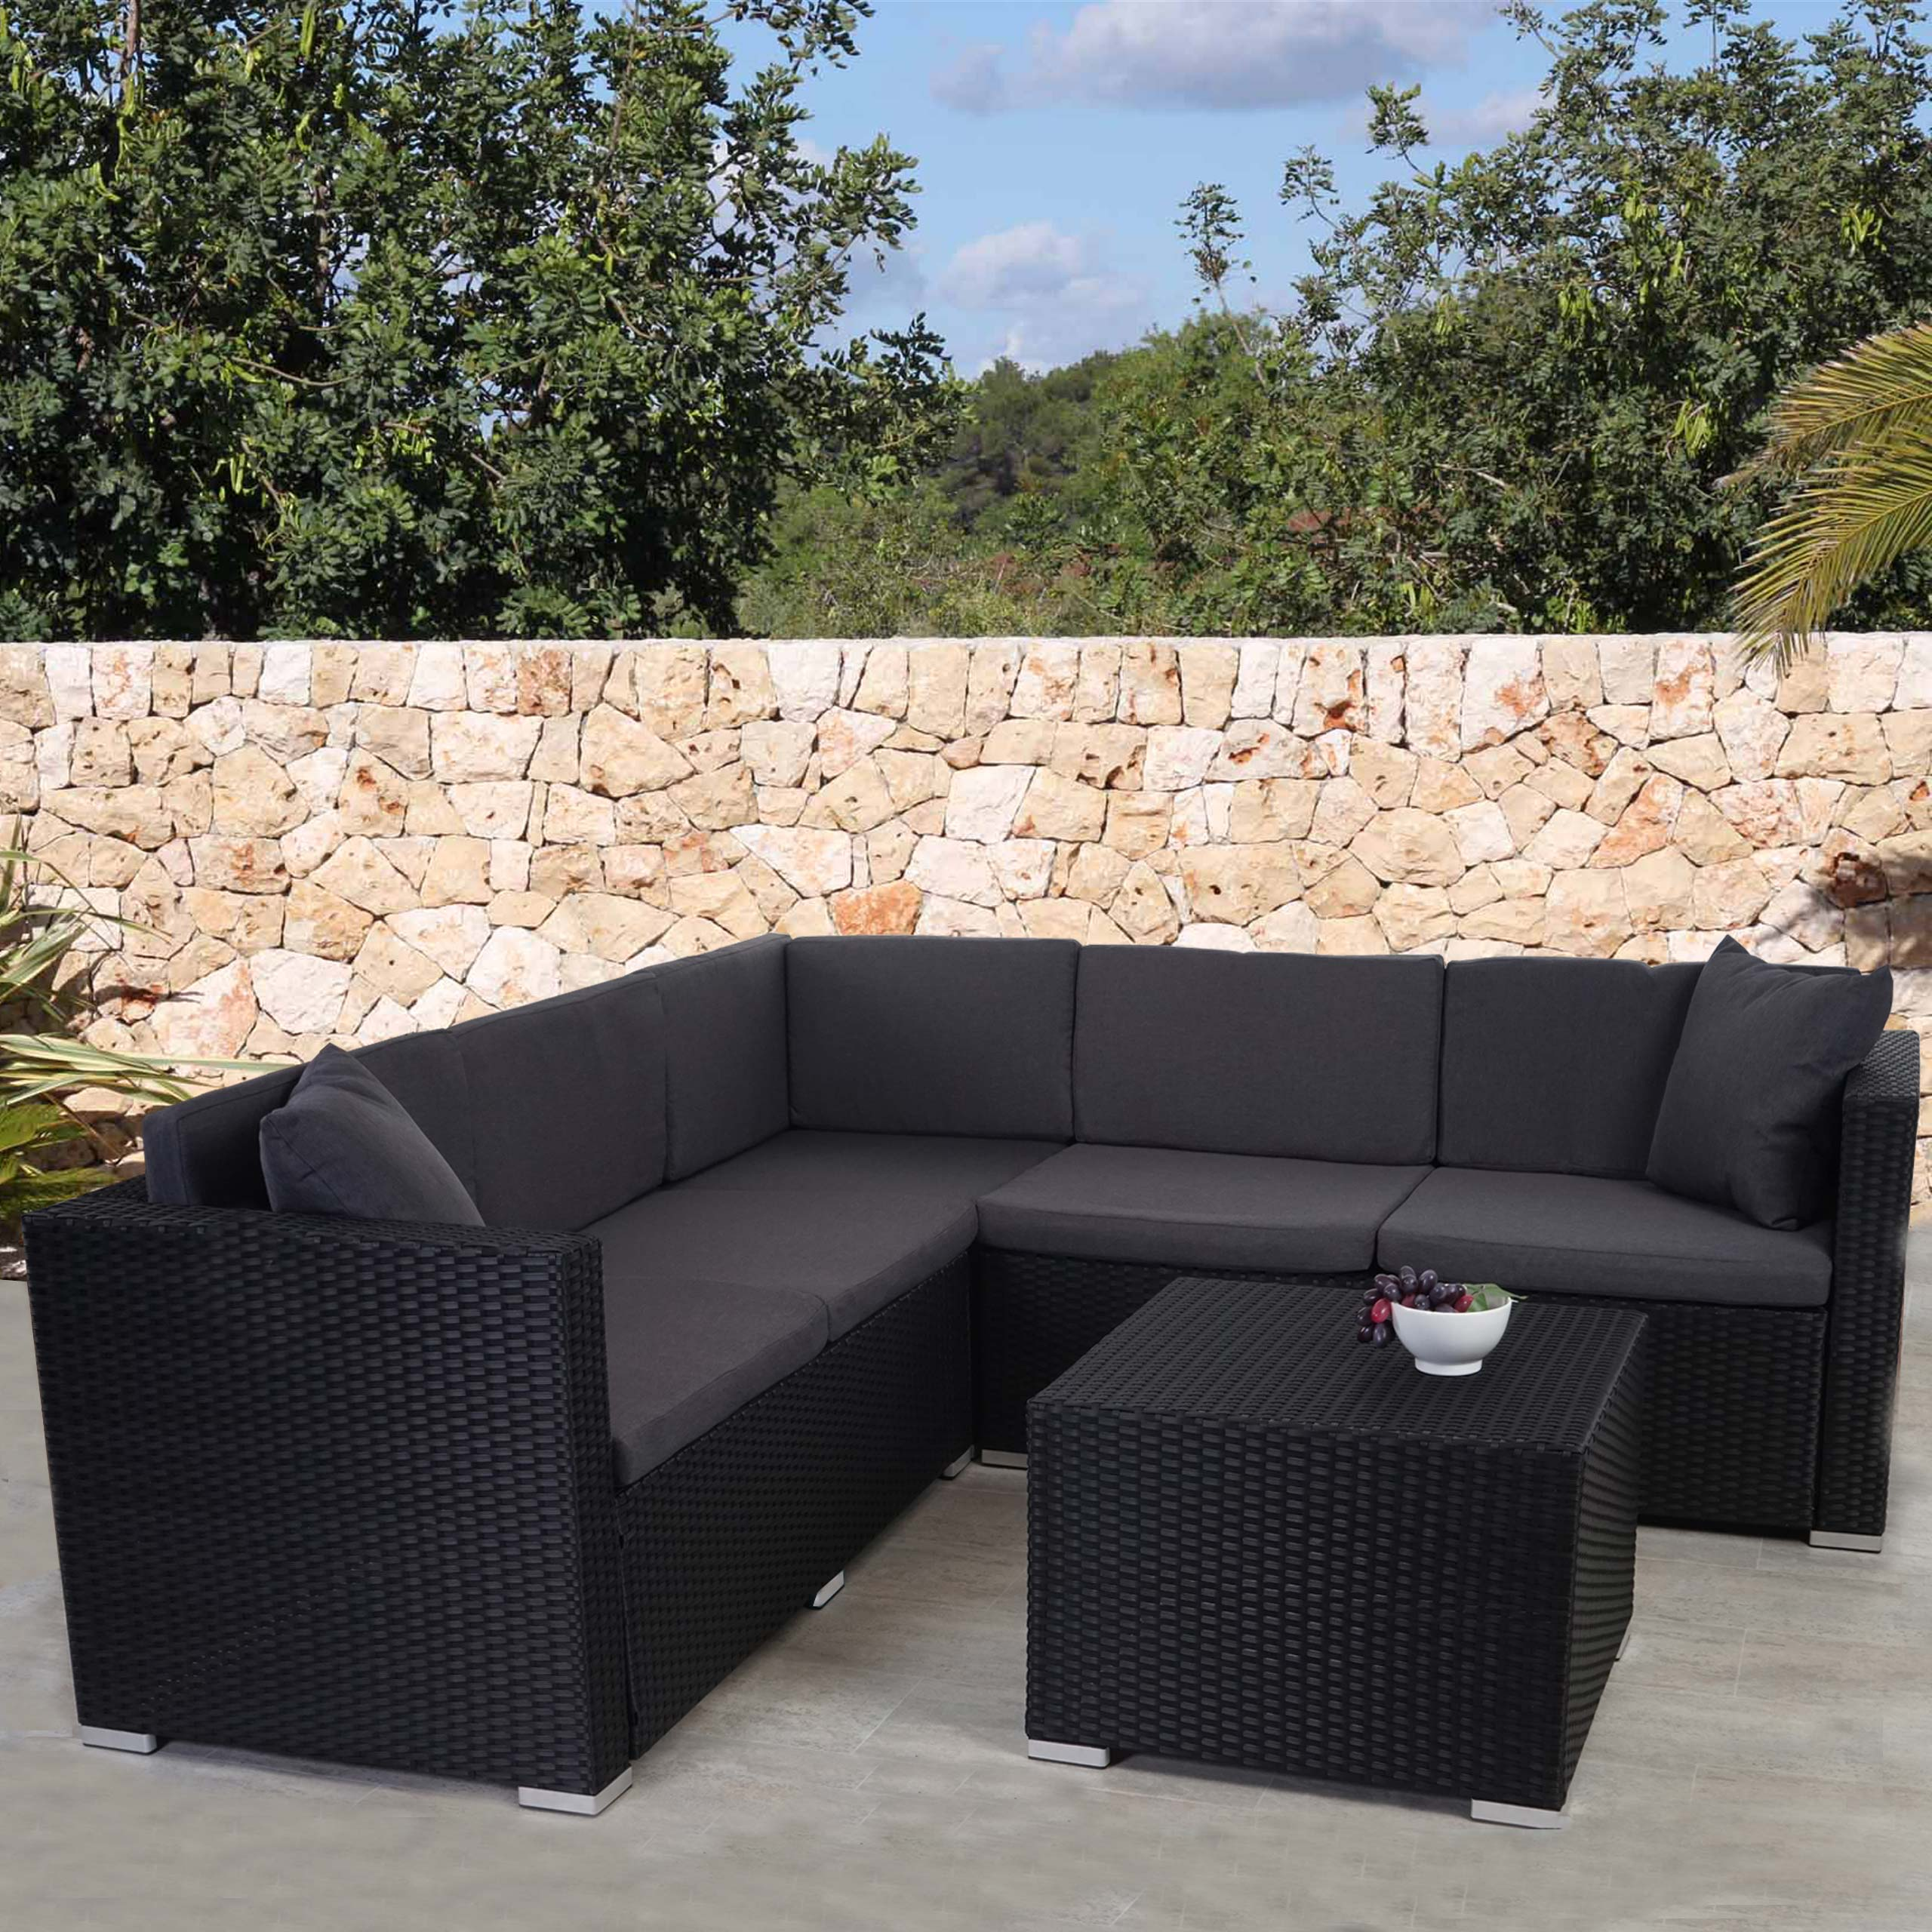 Garten Garnituren Sofa Rattan Garnituren Teuer Hat Hier